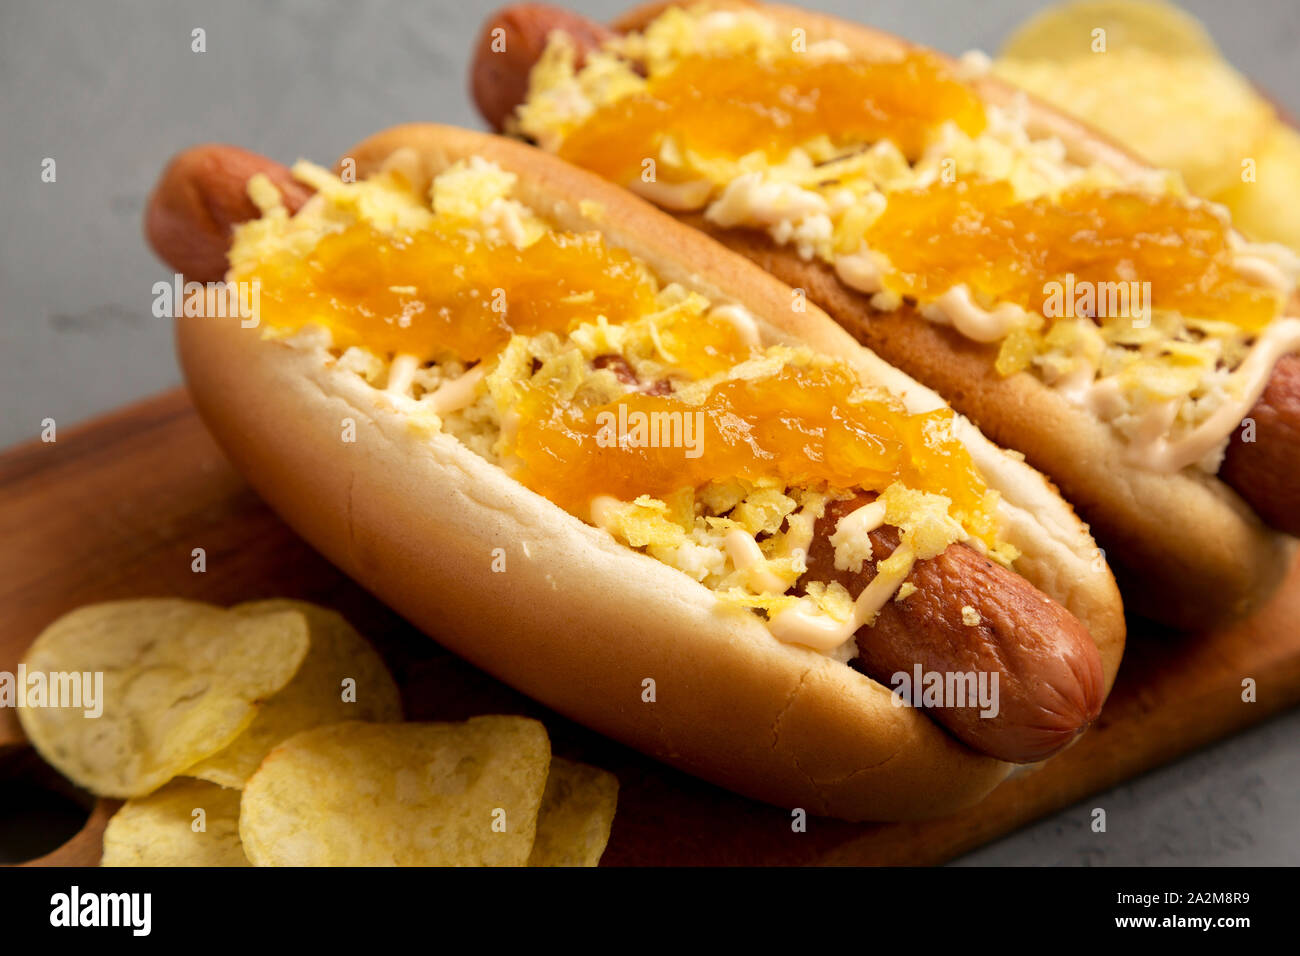 Homemade colombian hot dogs with pineapple sauce, chips and mayo ketchup on a rustic wooden board on a gray surface. Flat lay, from above, top view. C Stock Photo